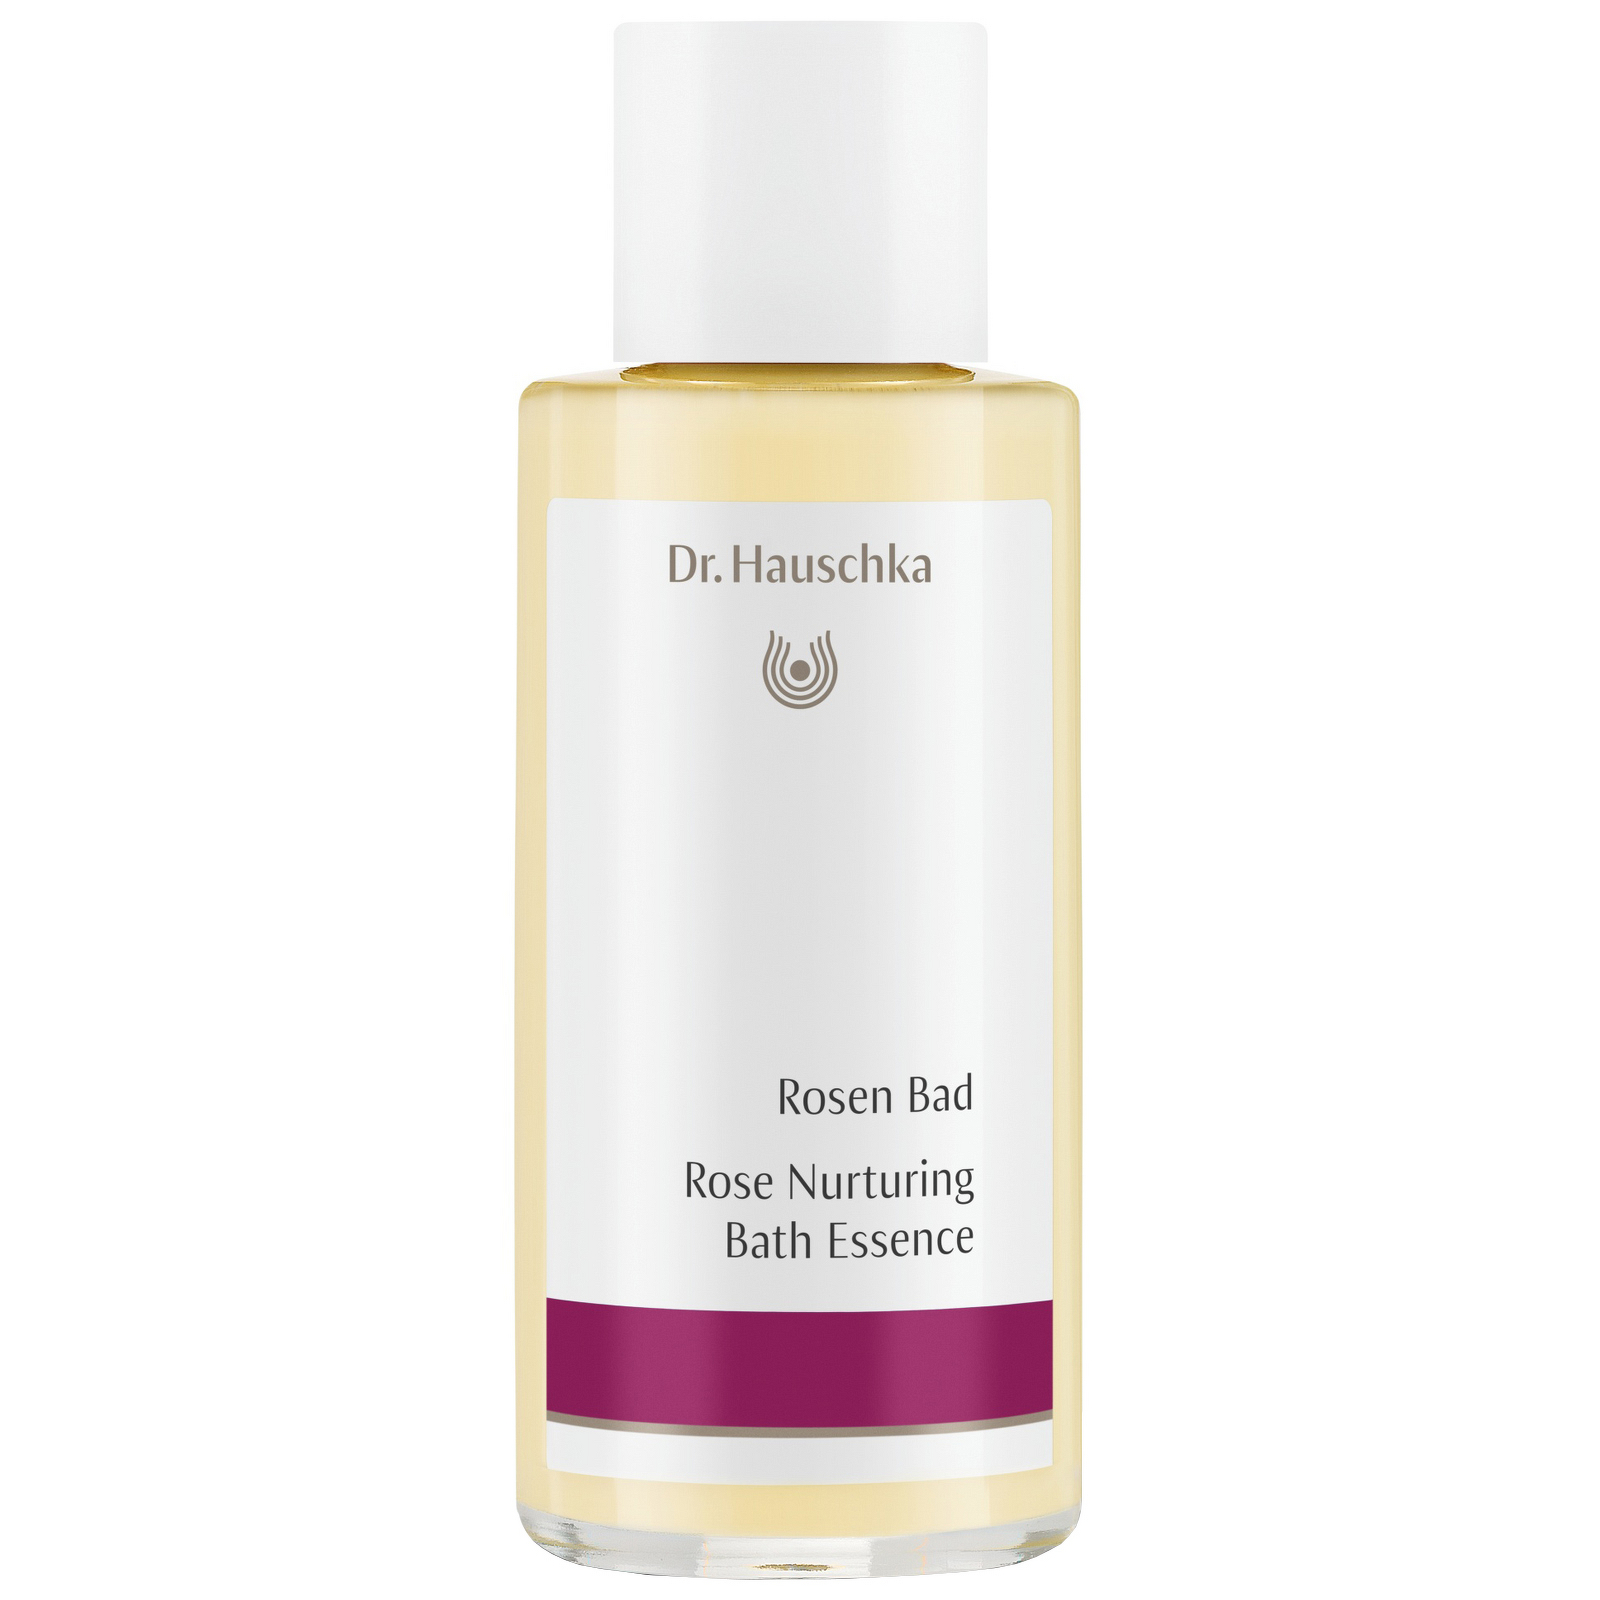 Dr. Hauschka Bath & Shower Rose Nurturing Bath Essence 100ml